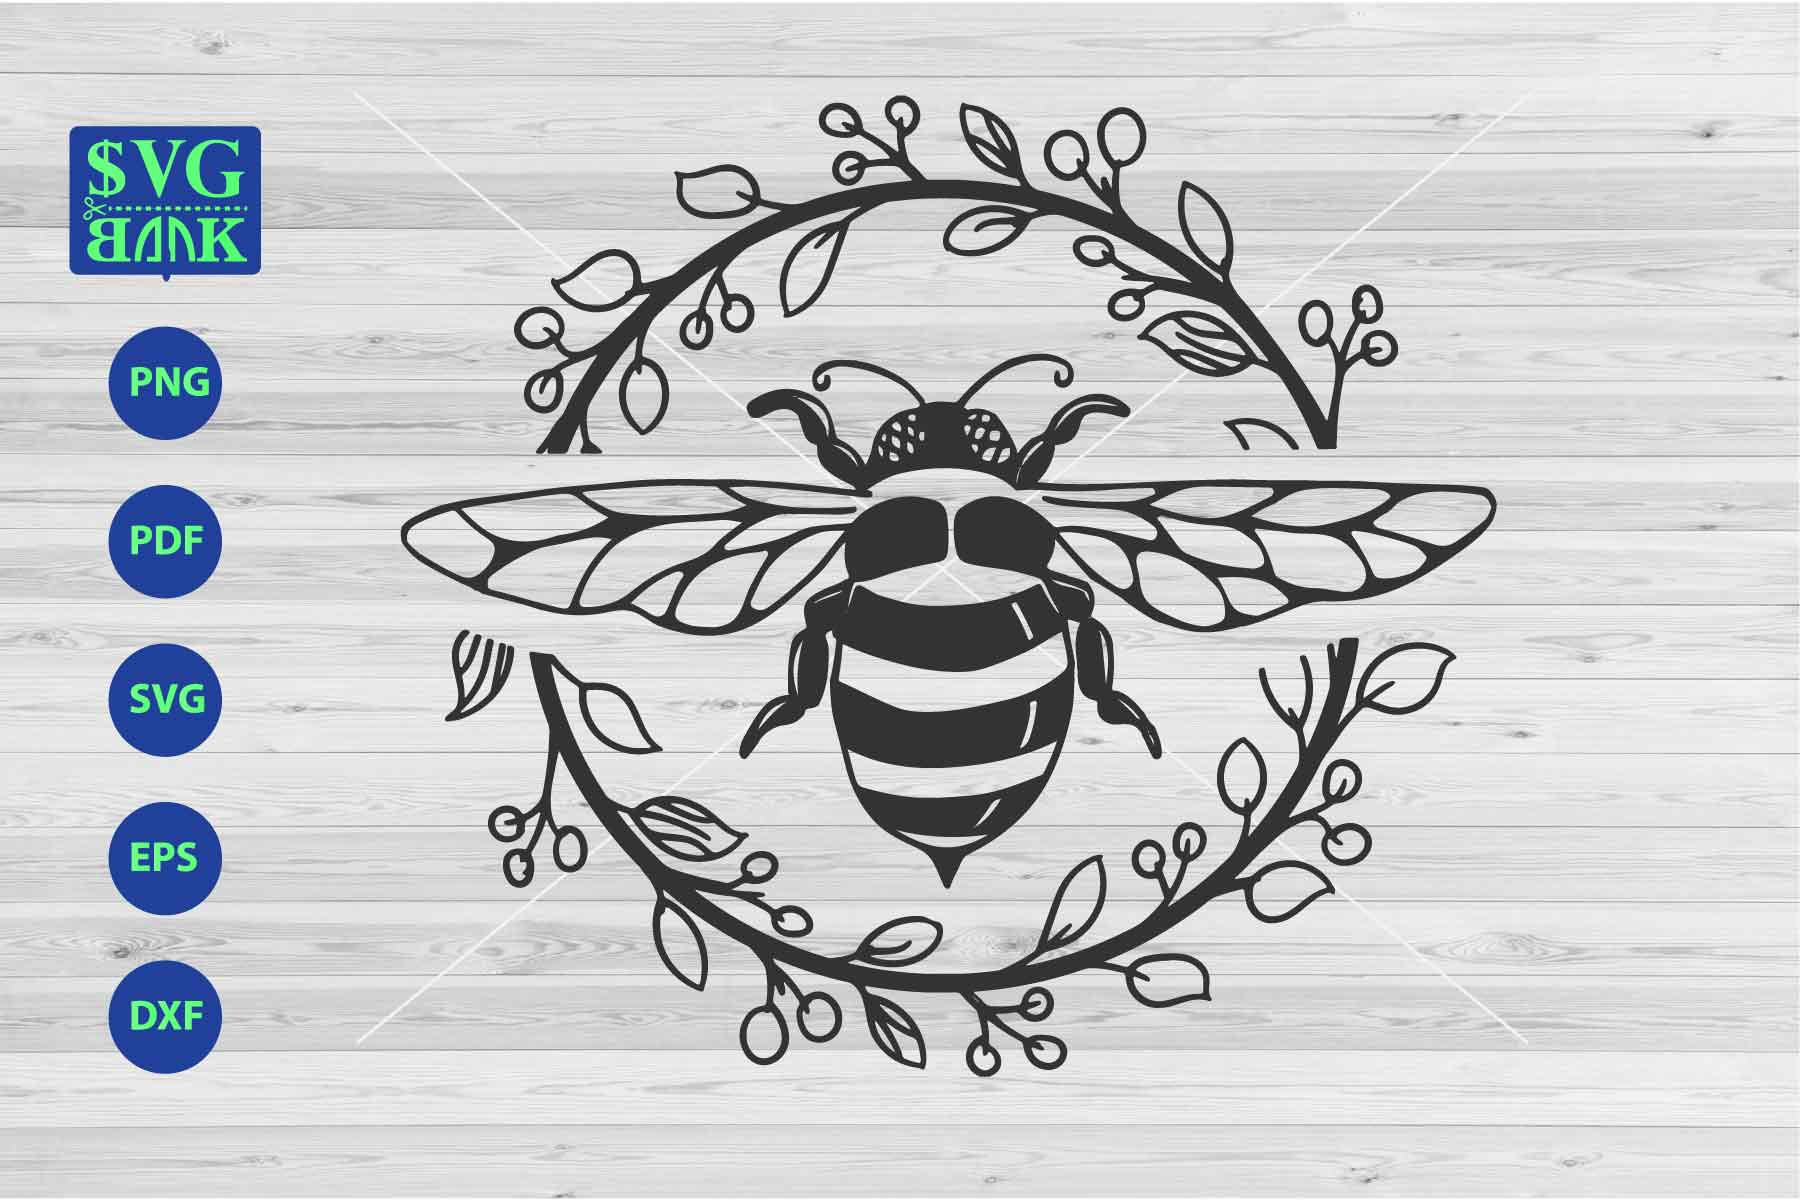 Download Free Bee Graphic By Svgbank Creative Fabrica for Cricut Explore, Silhouette and other cutting machines.